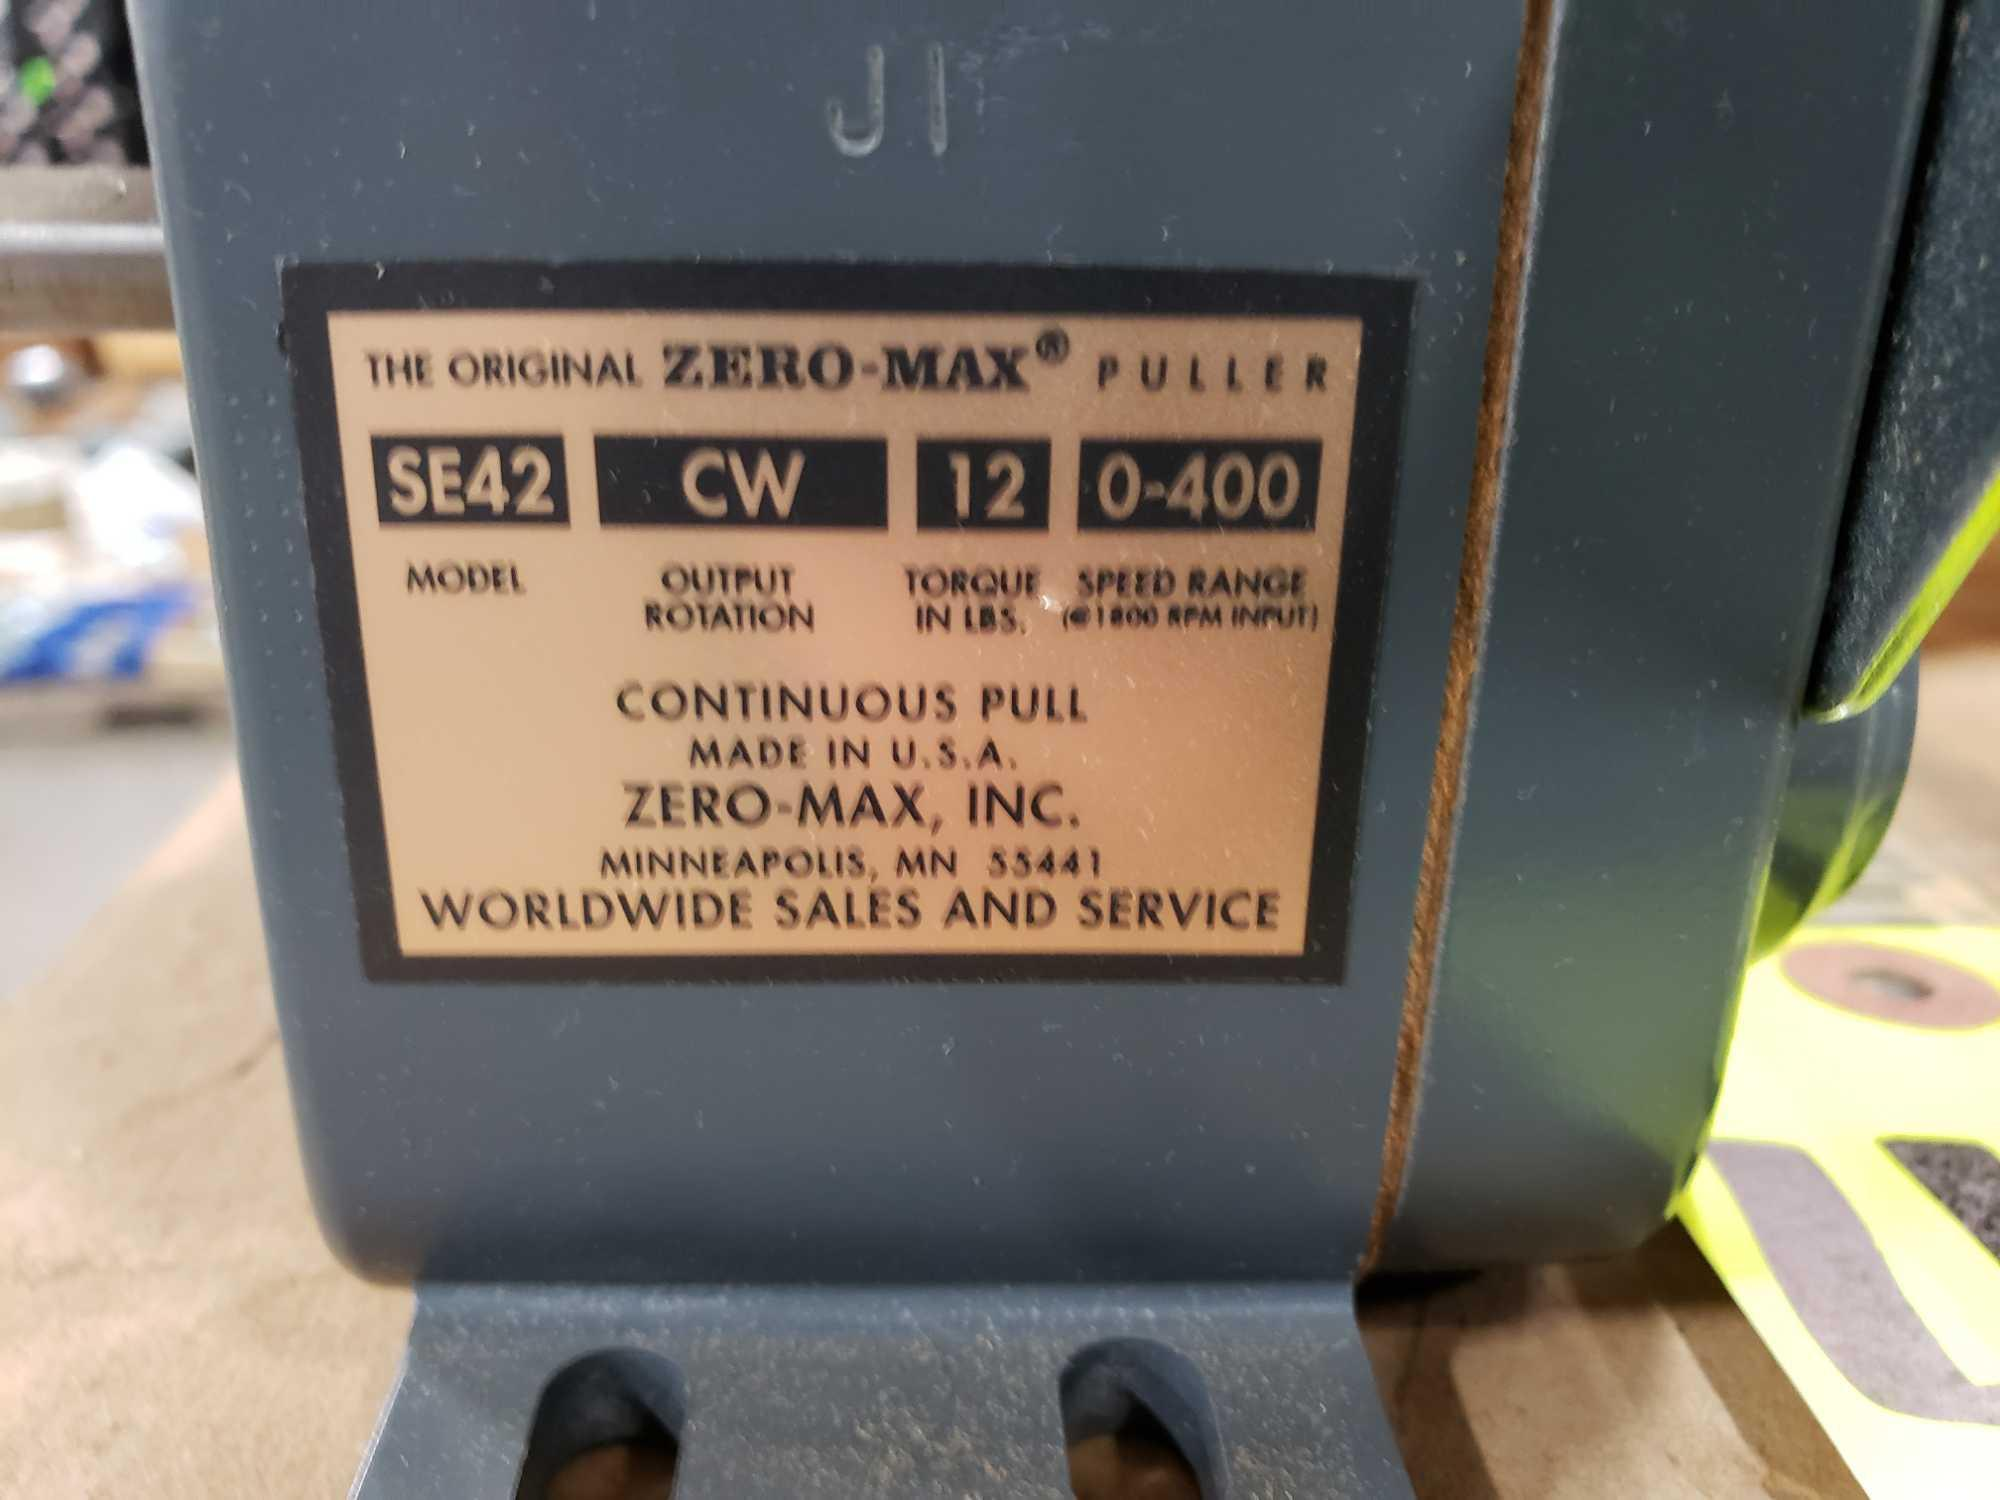 Zero-max drive power block model SE42, CW output rotation, 12lb torque, 0-400 speed range. New. - Image 2 of 2